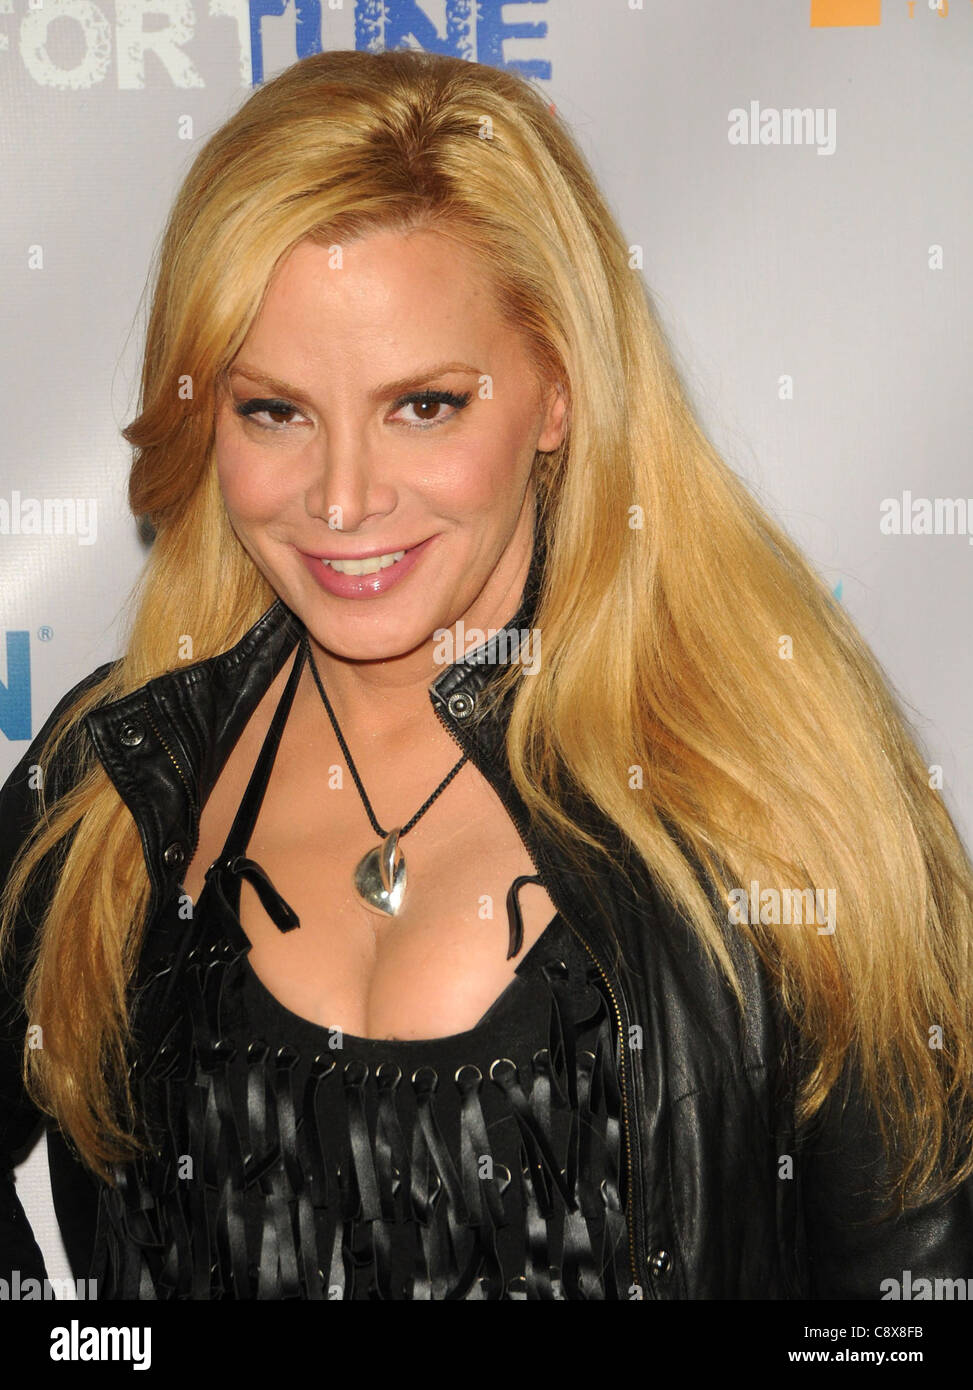 Nicollette Sheridan recommendations